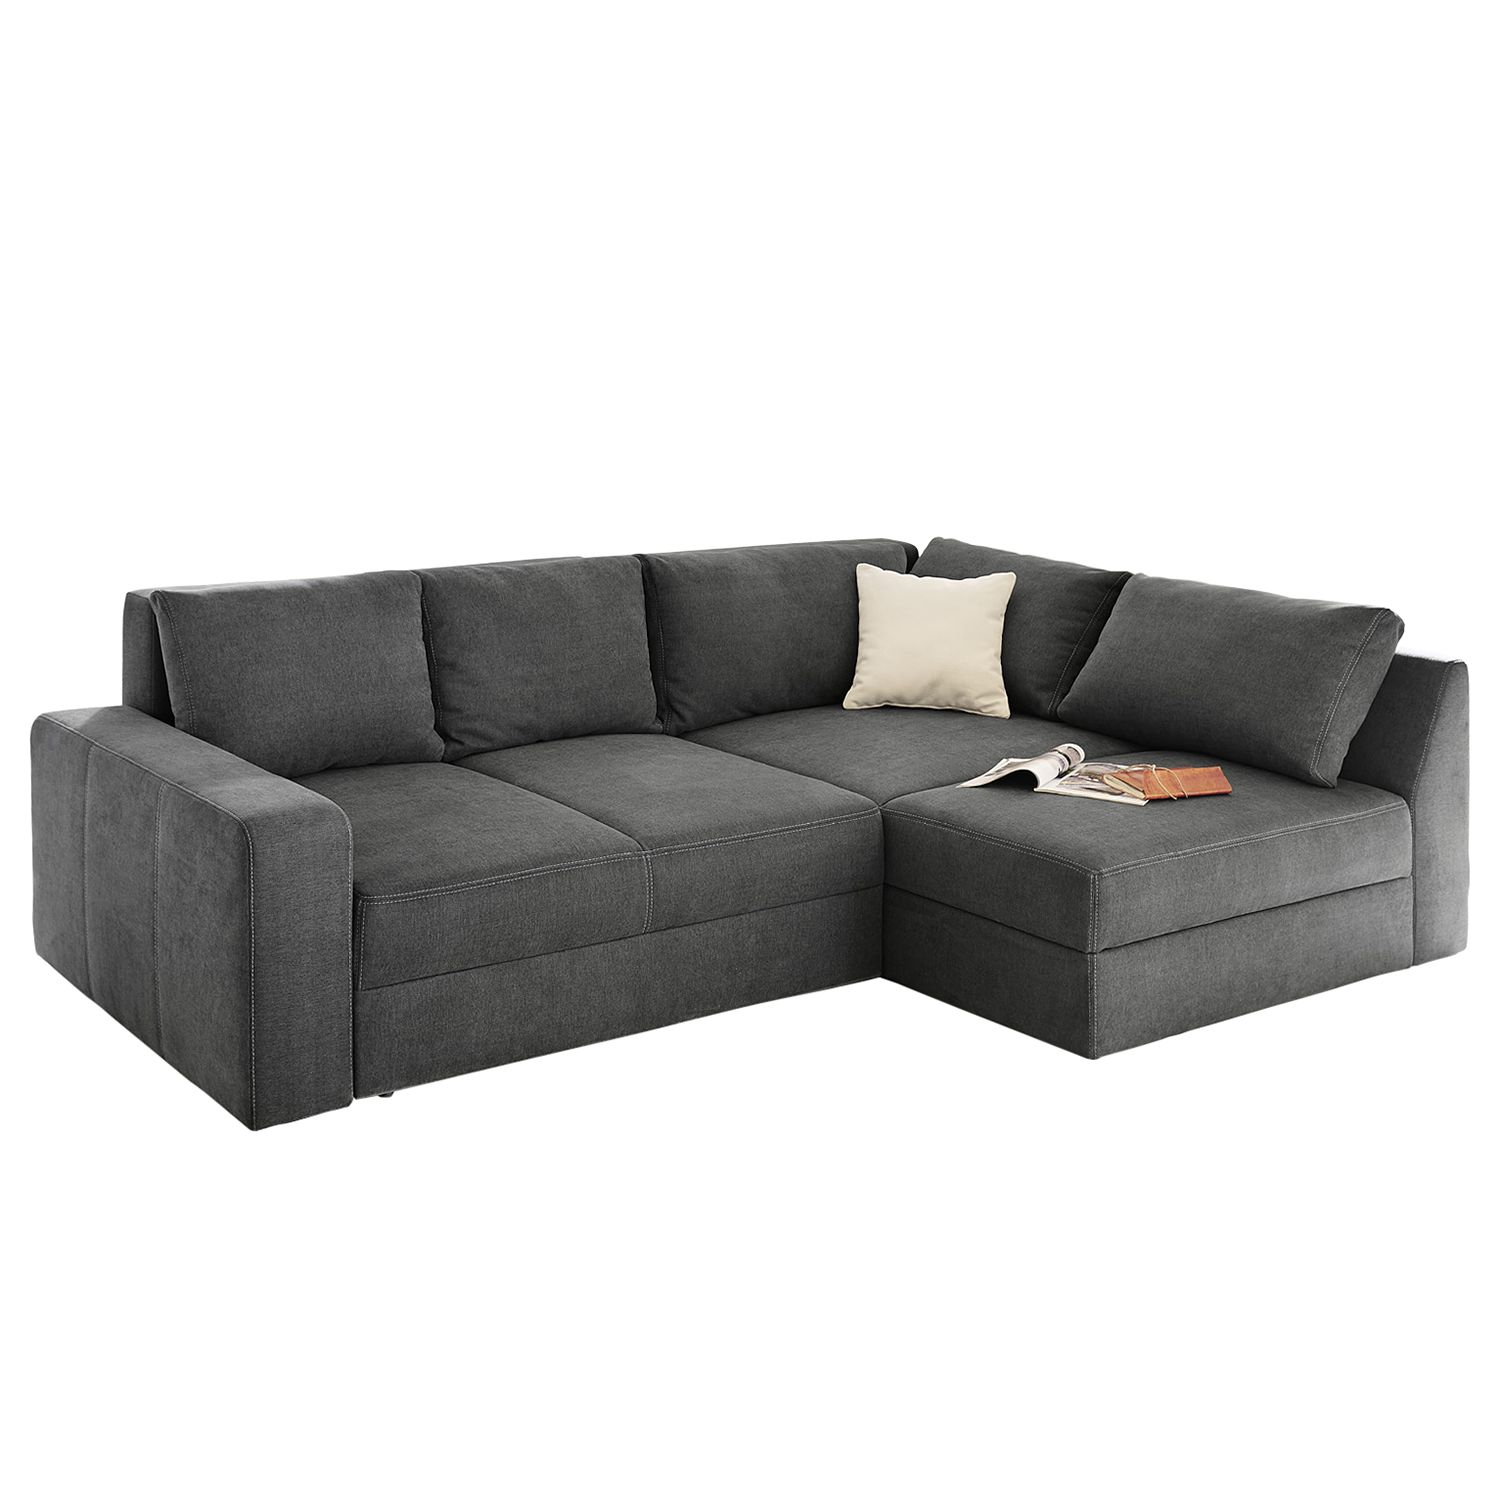 Schlafsofa ecksofa top home with schlafsofa ecksofa for Ecksofa couch